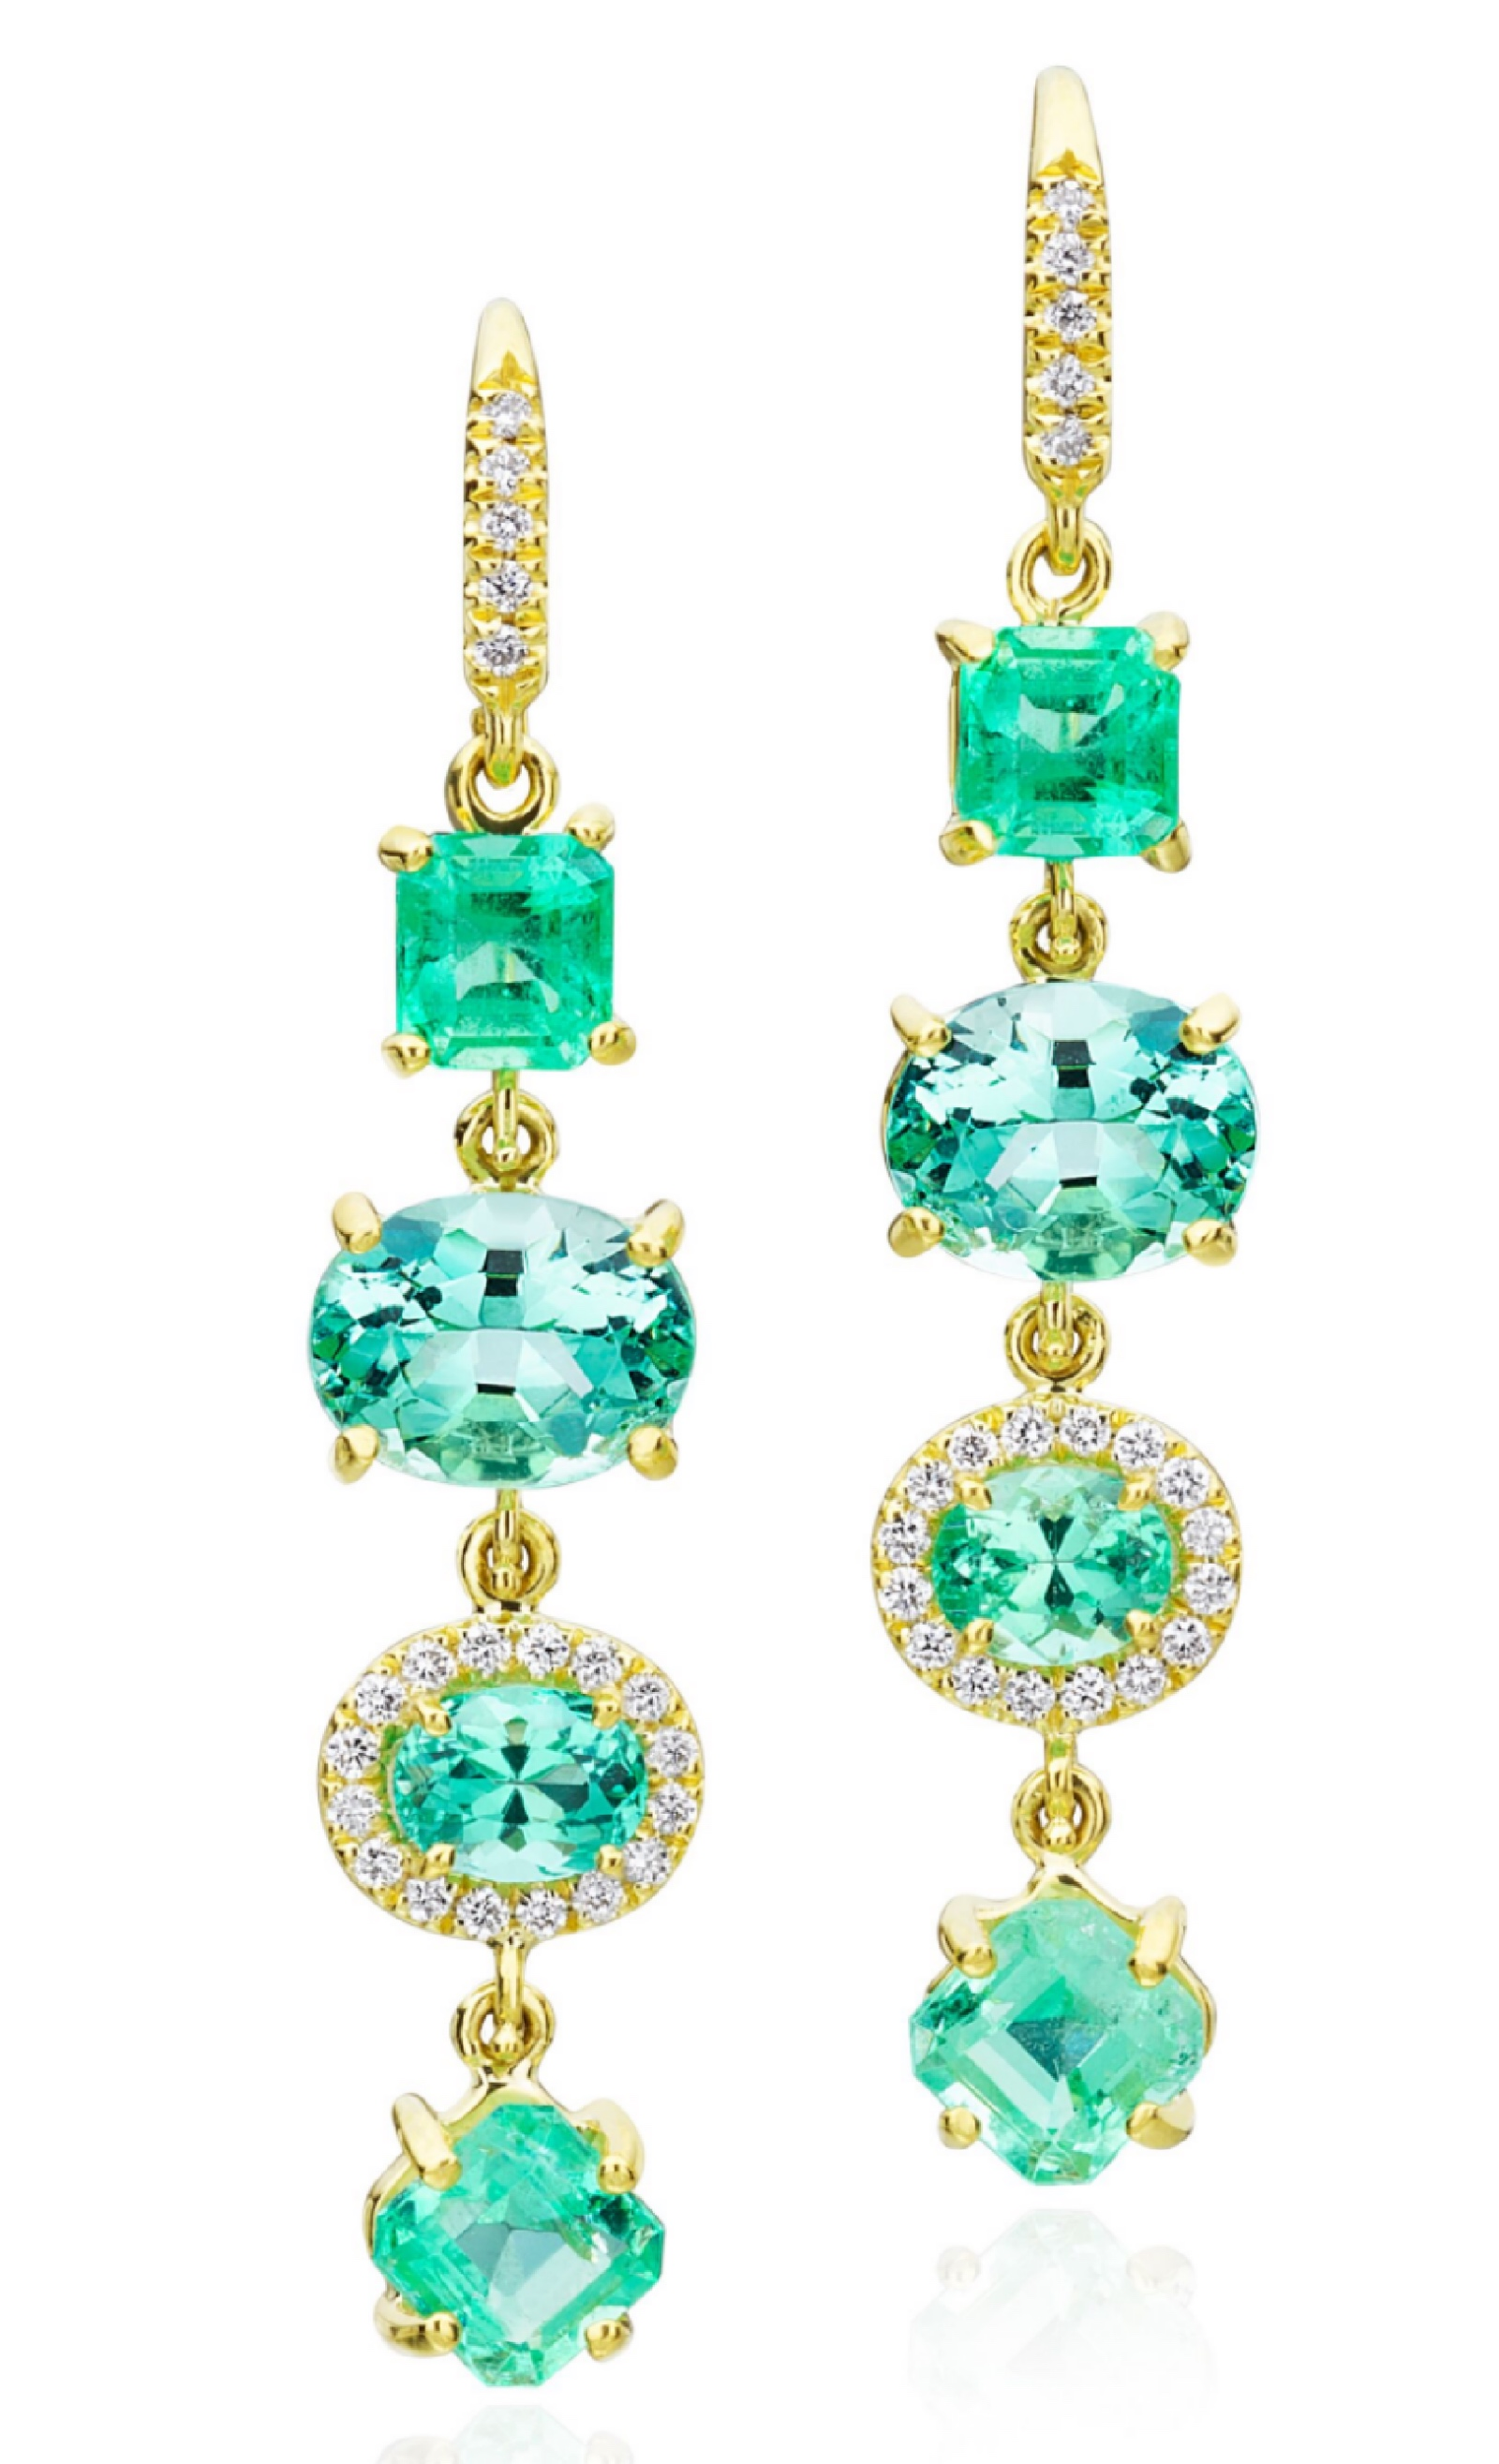 Gemma earrings with 6.69 ct. minty emerald and 0.29 ct. t.w. diamonds in 18K yellow gold